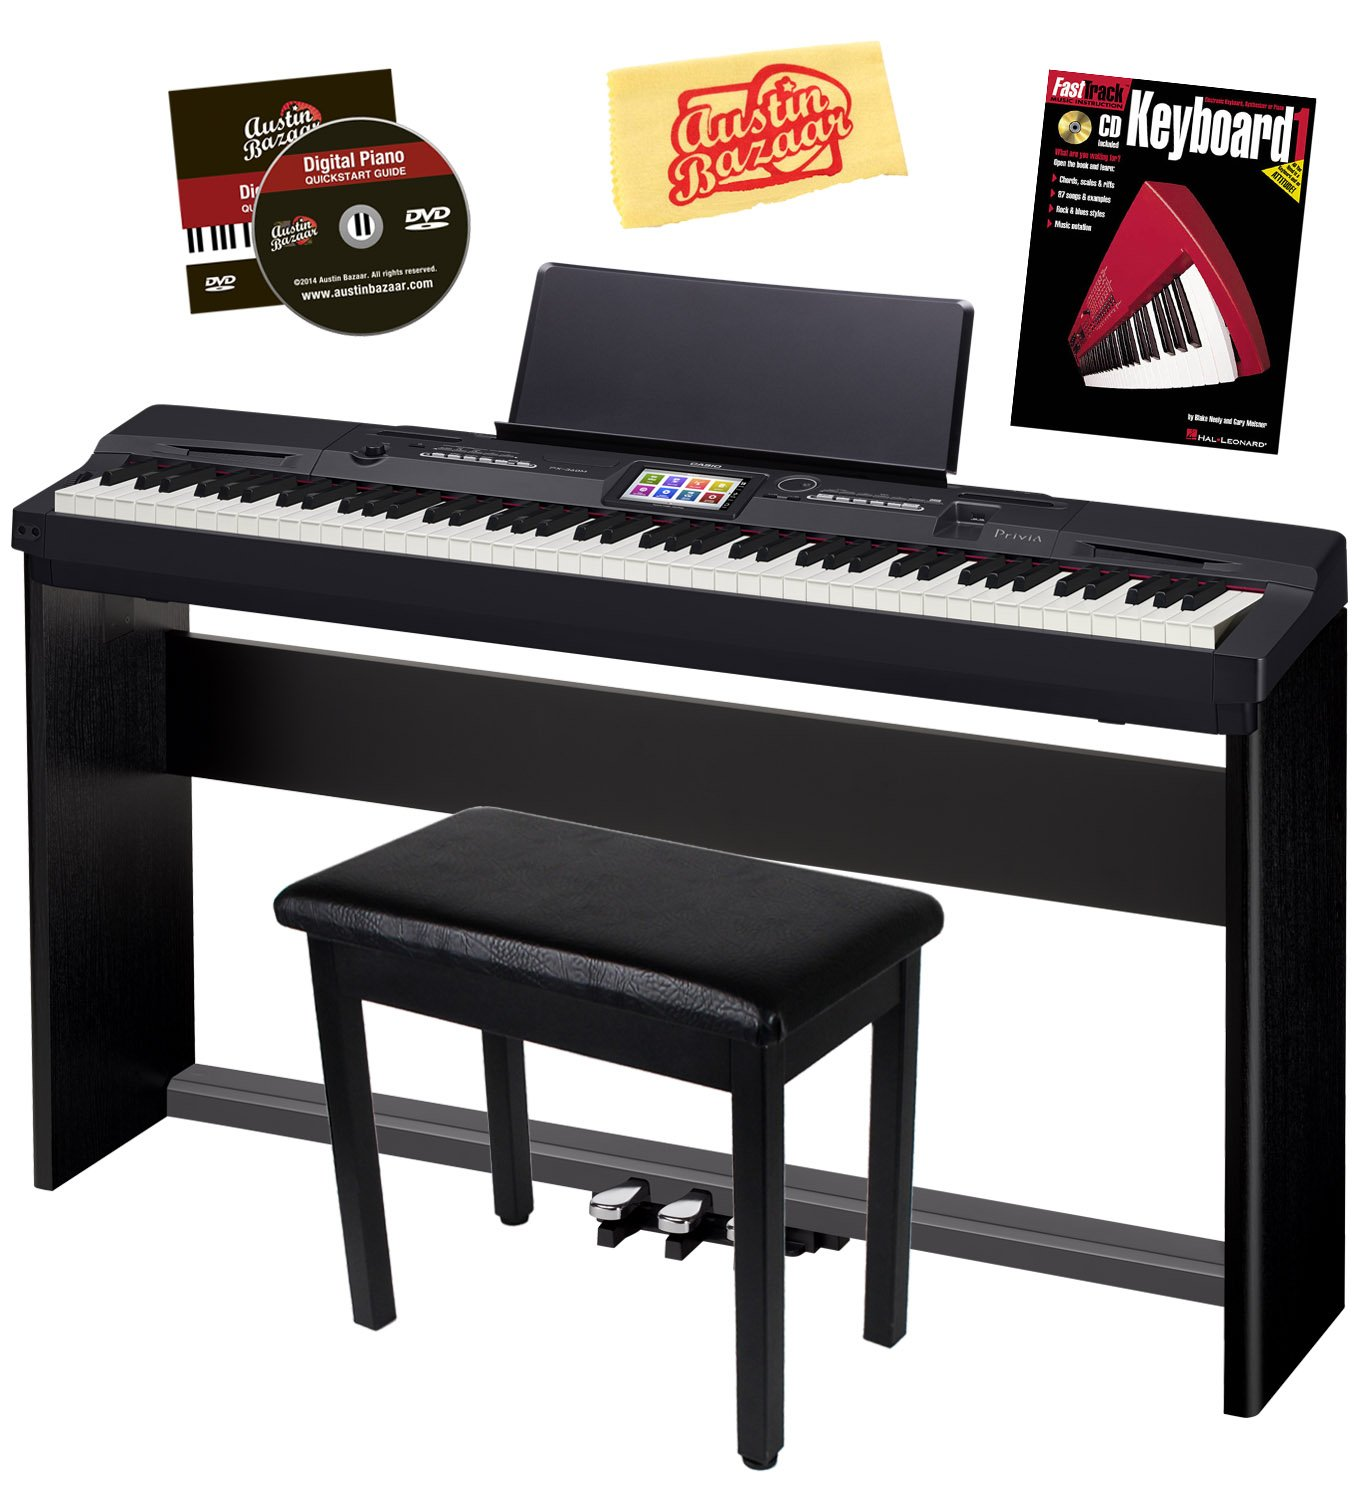 Casio Privia PX-360 Digital Piano - Black Bundle with CS-67 Stand, SP-33 Pedal, Furniture Bench, Instructional Book, Austin Bazaar Instructional DVD, and Polishing Cloth by Casio (Image #1)